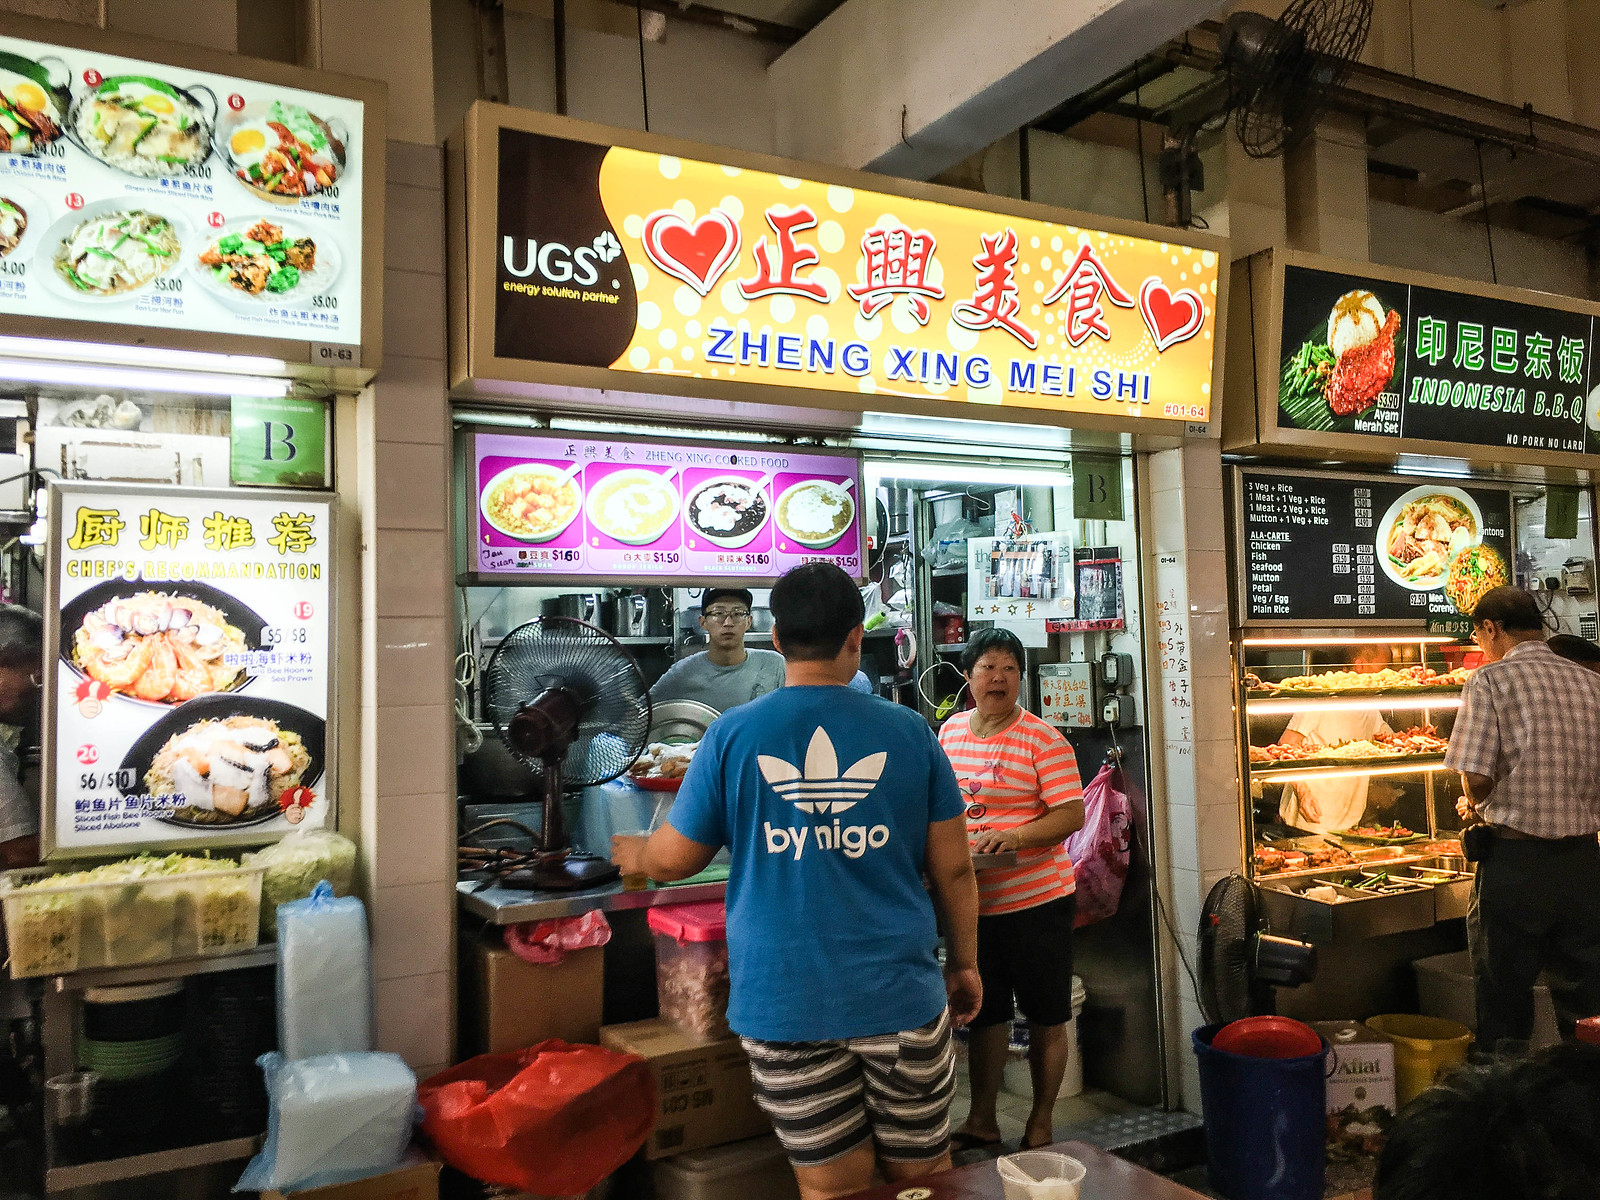 Albert Centre Market and Food Centre - Zheng Xing Mei Stall Front